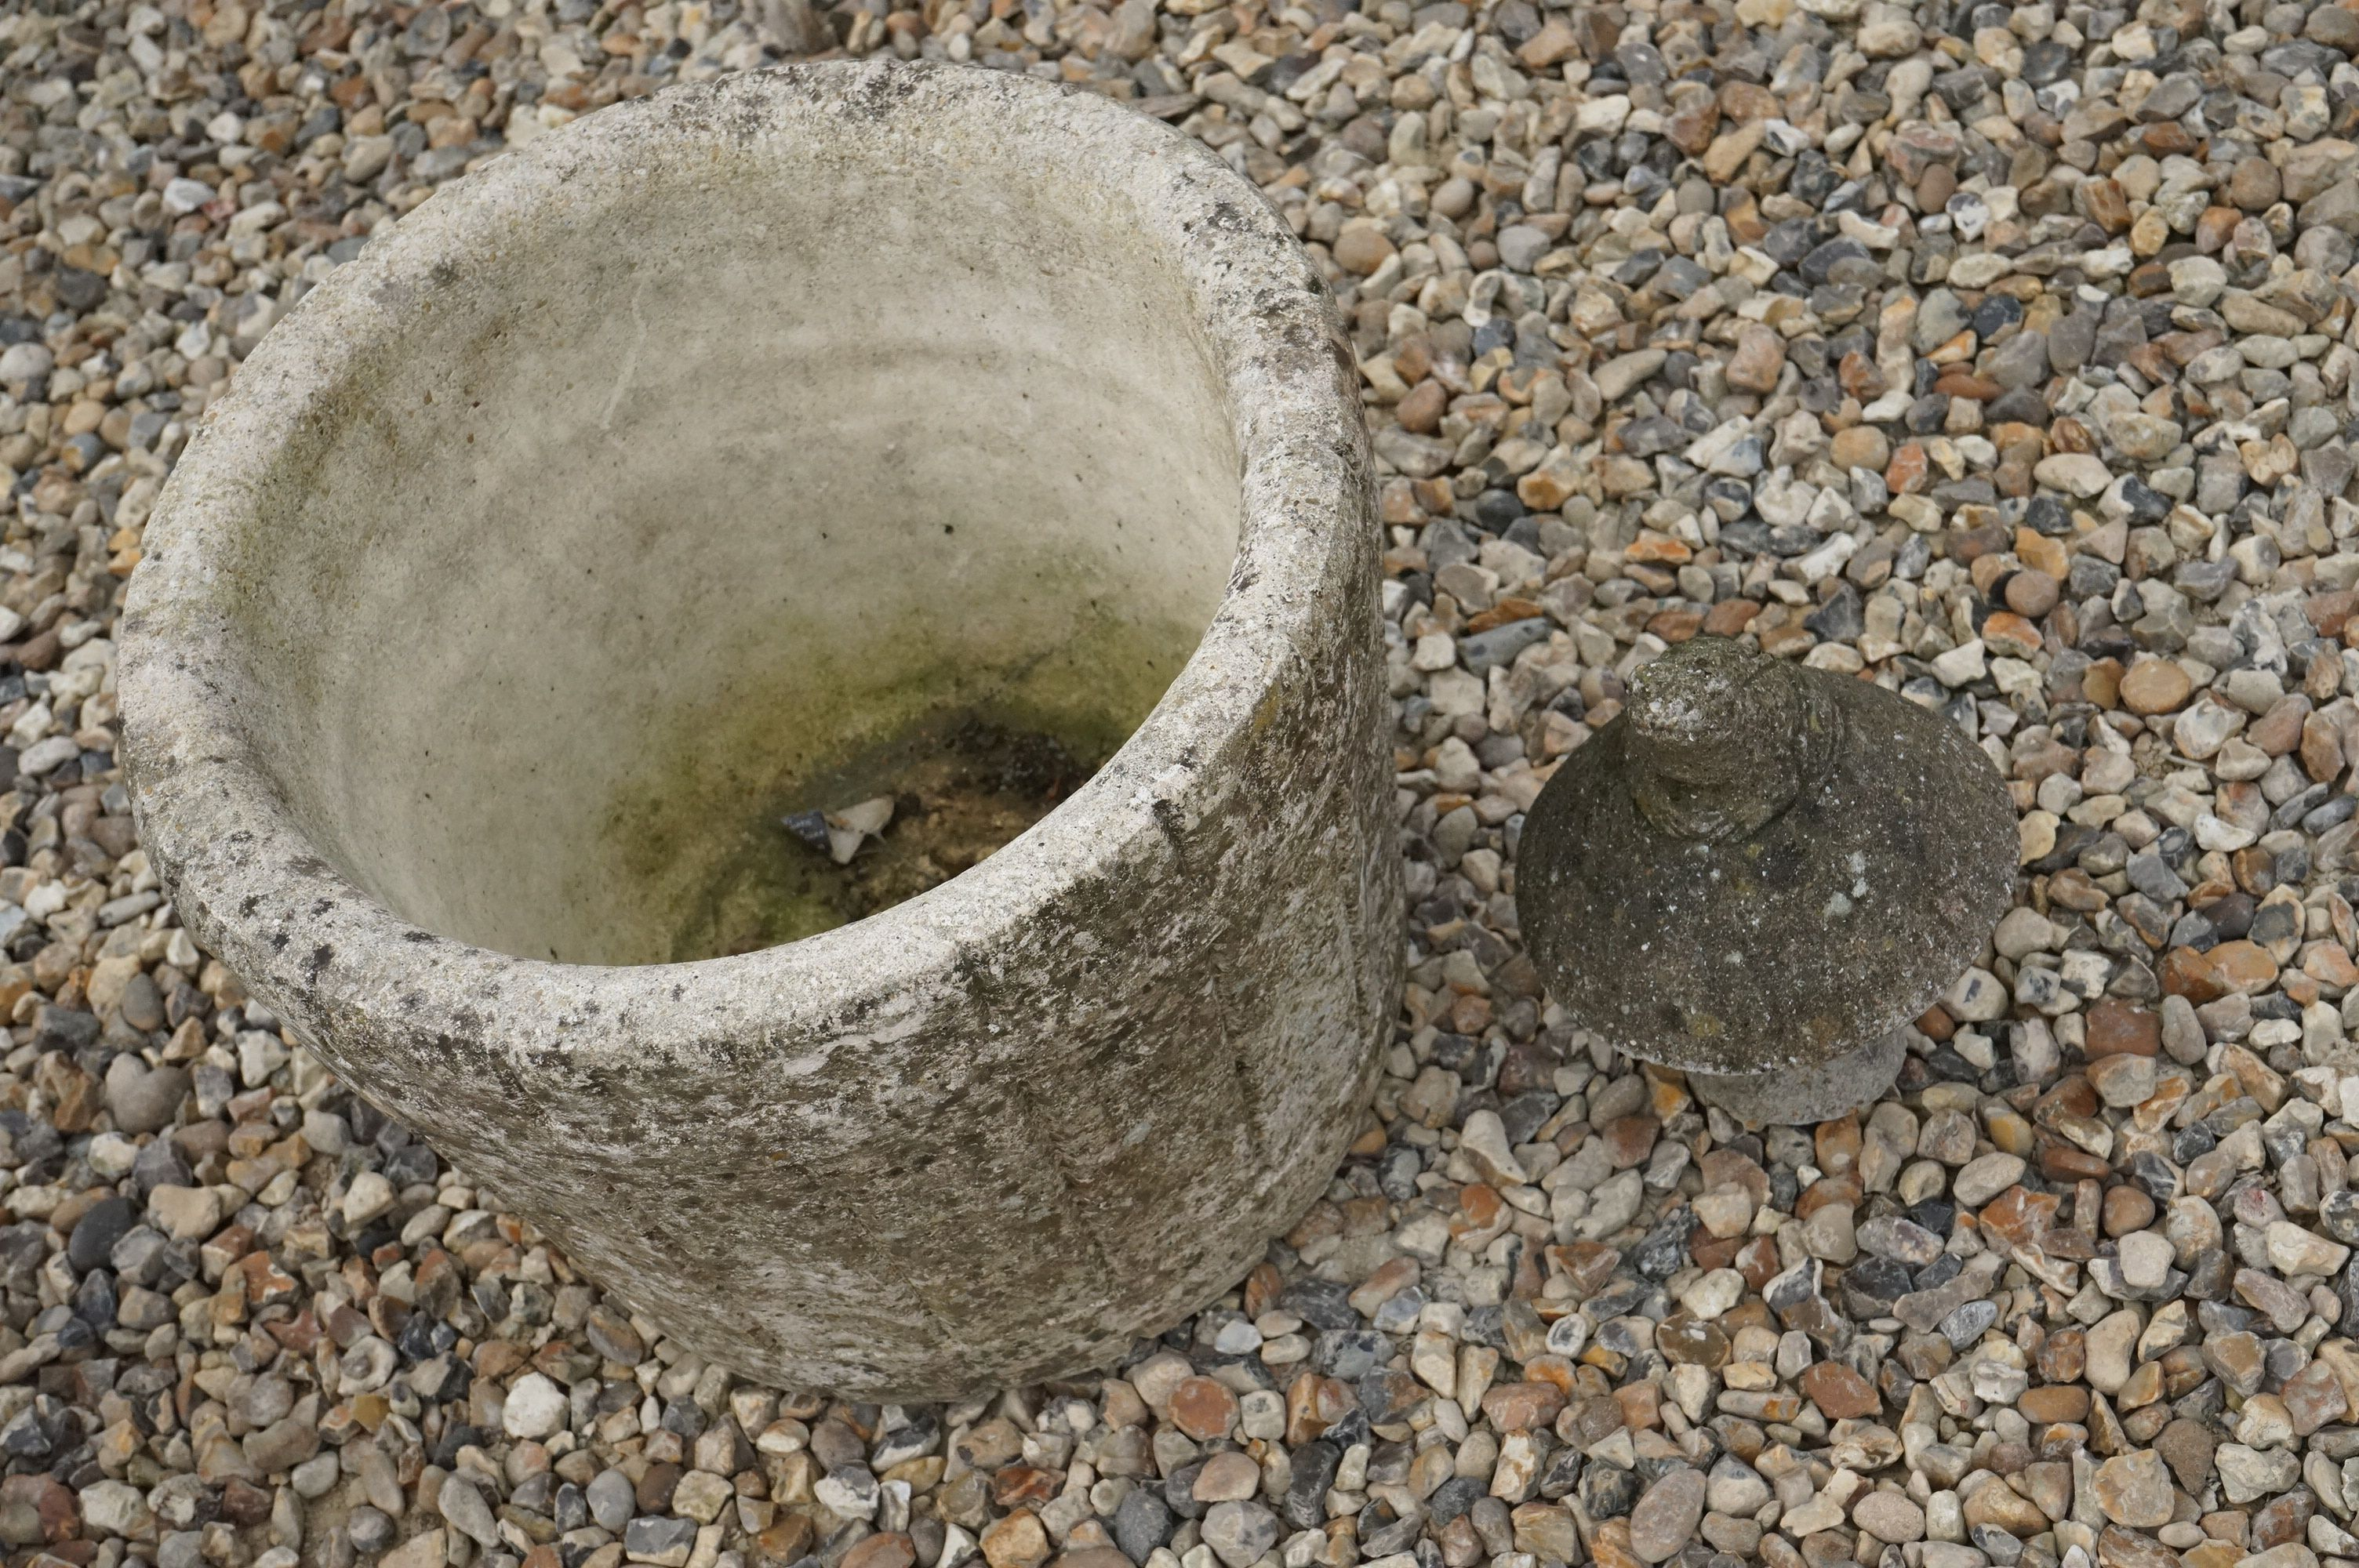 A reconstituted stone planter in the form of a barrel.